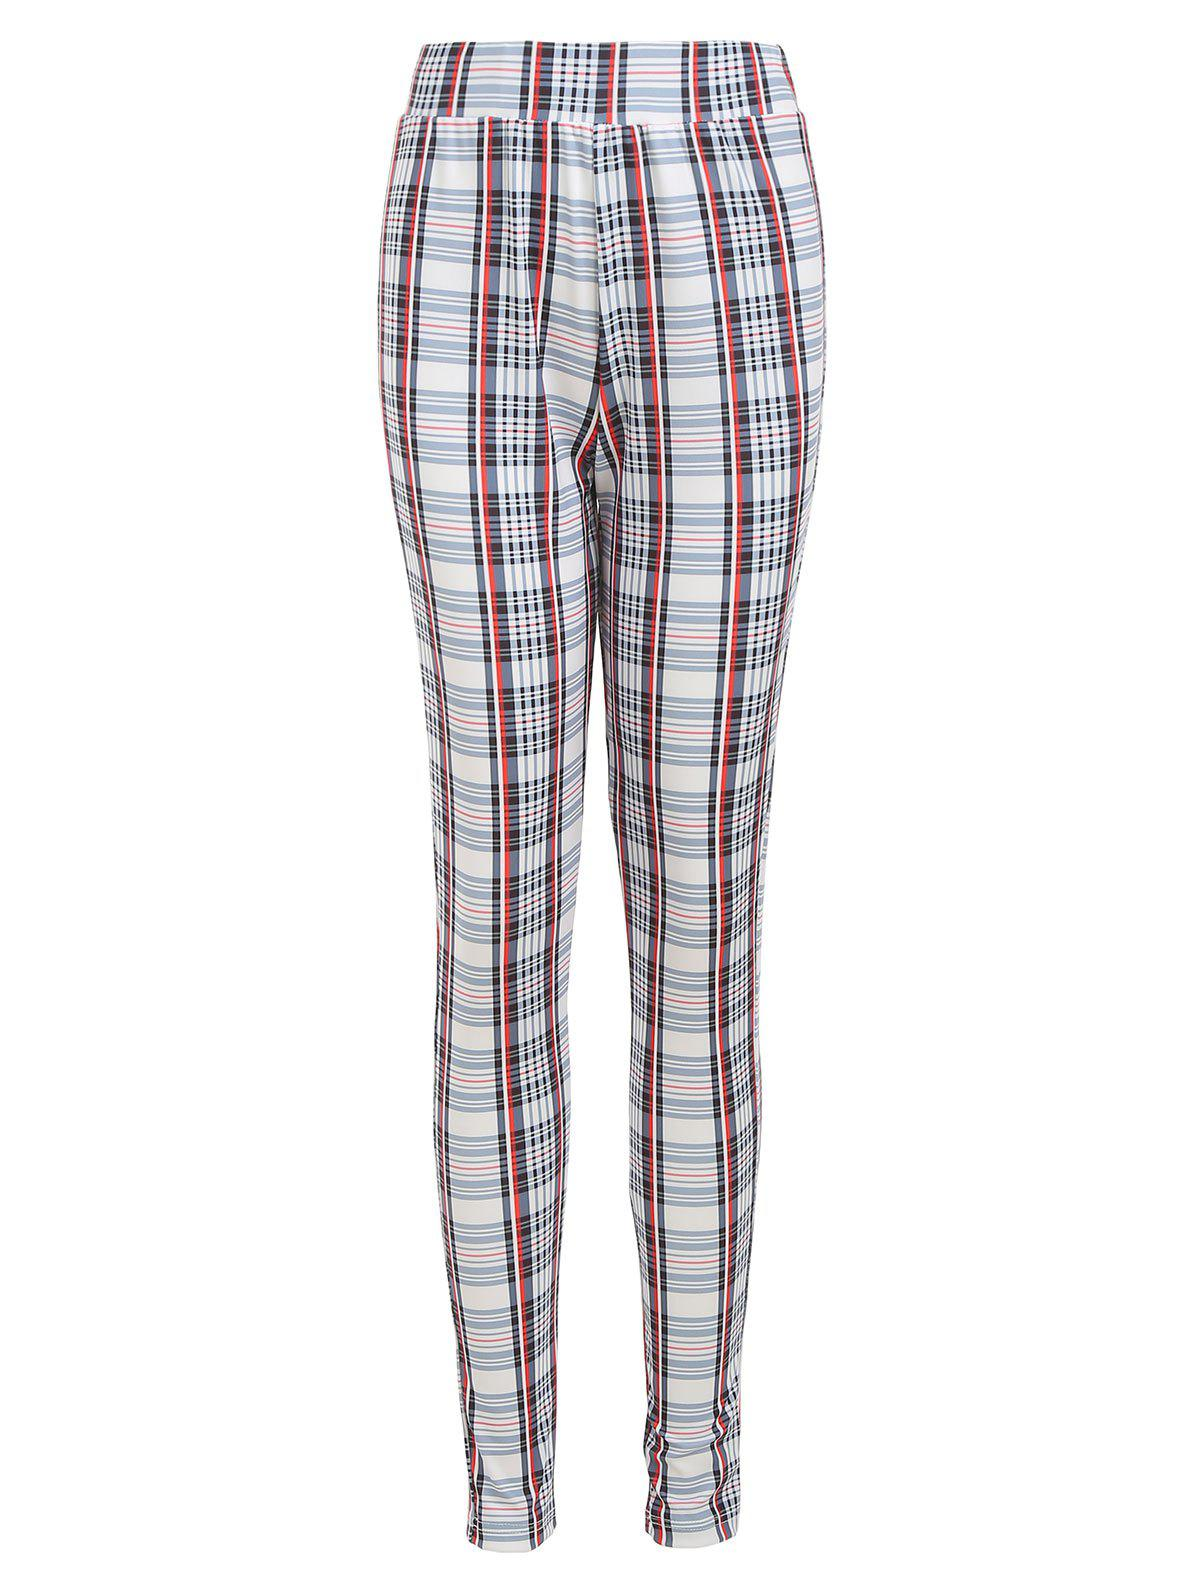 14493c06ff 41% OFF] High Waisted Plaid Skinny Pants | Rosegal